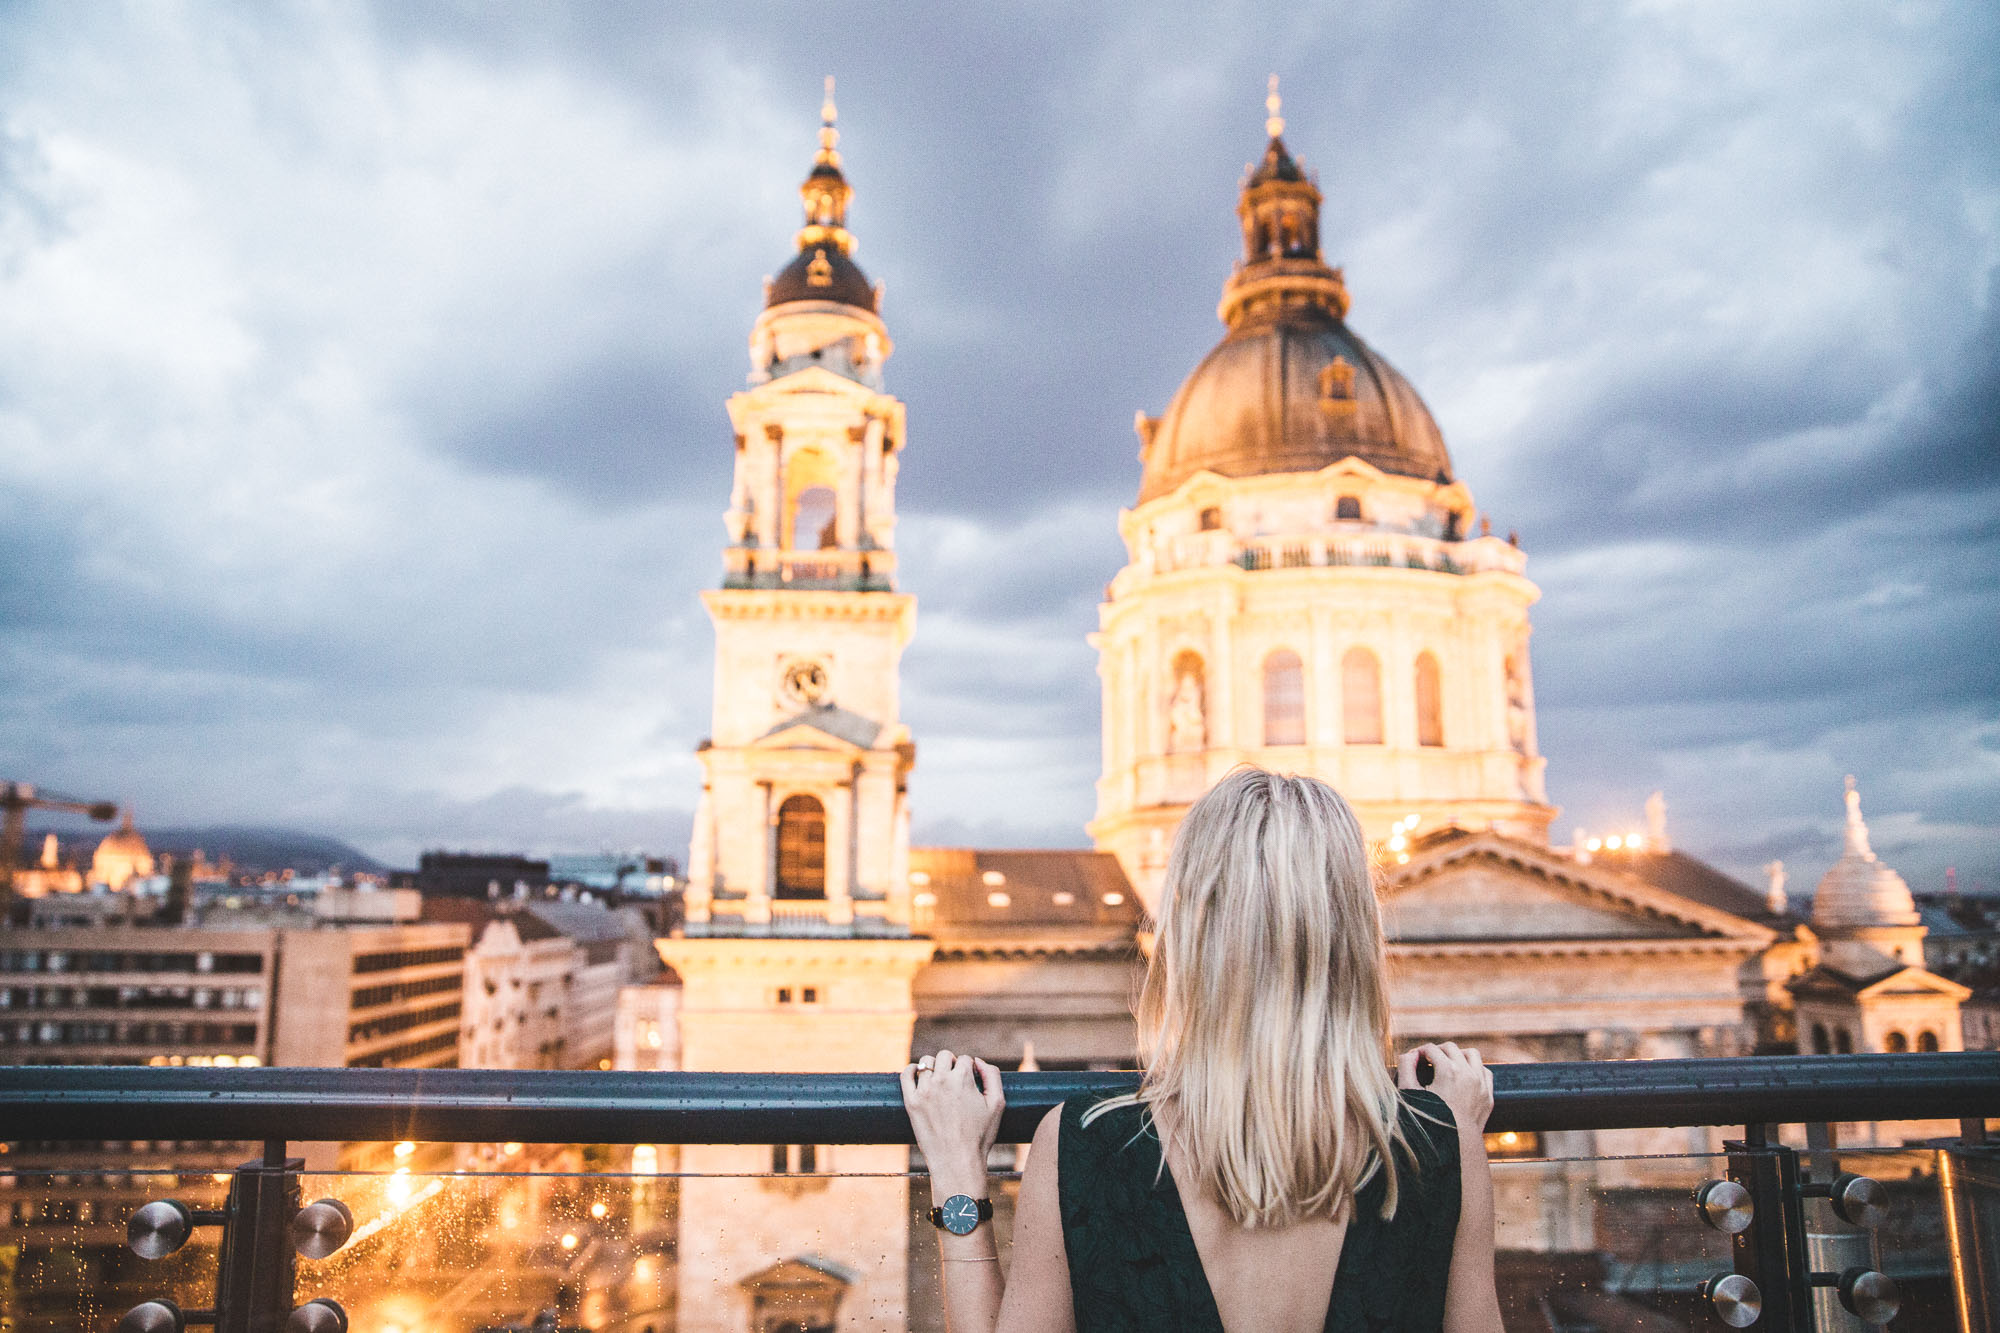 Rooftop views of St Stephen's Basilica from Aria Hotel in Budapest, Hungary